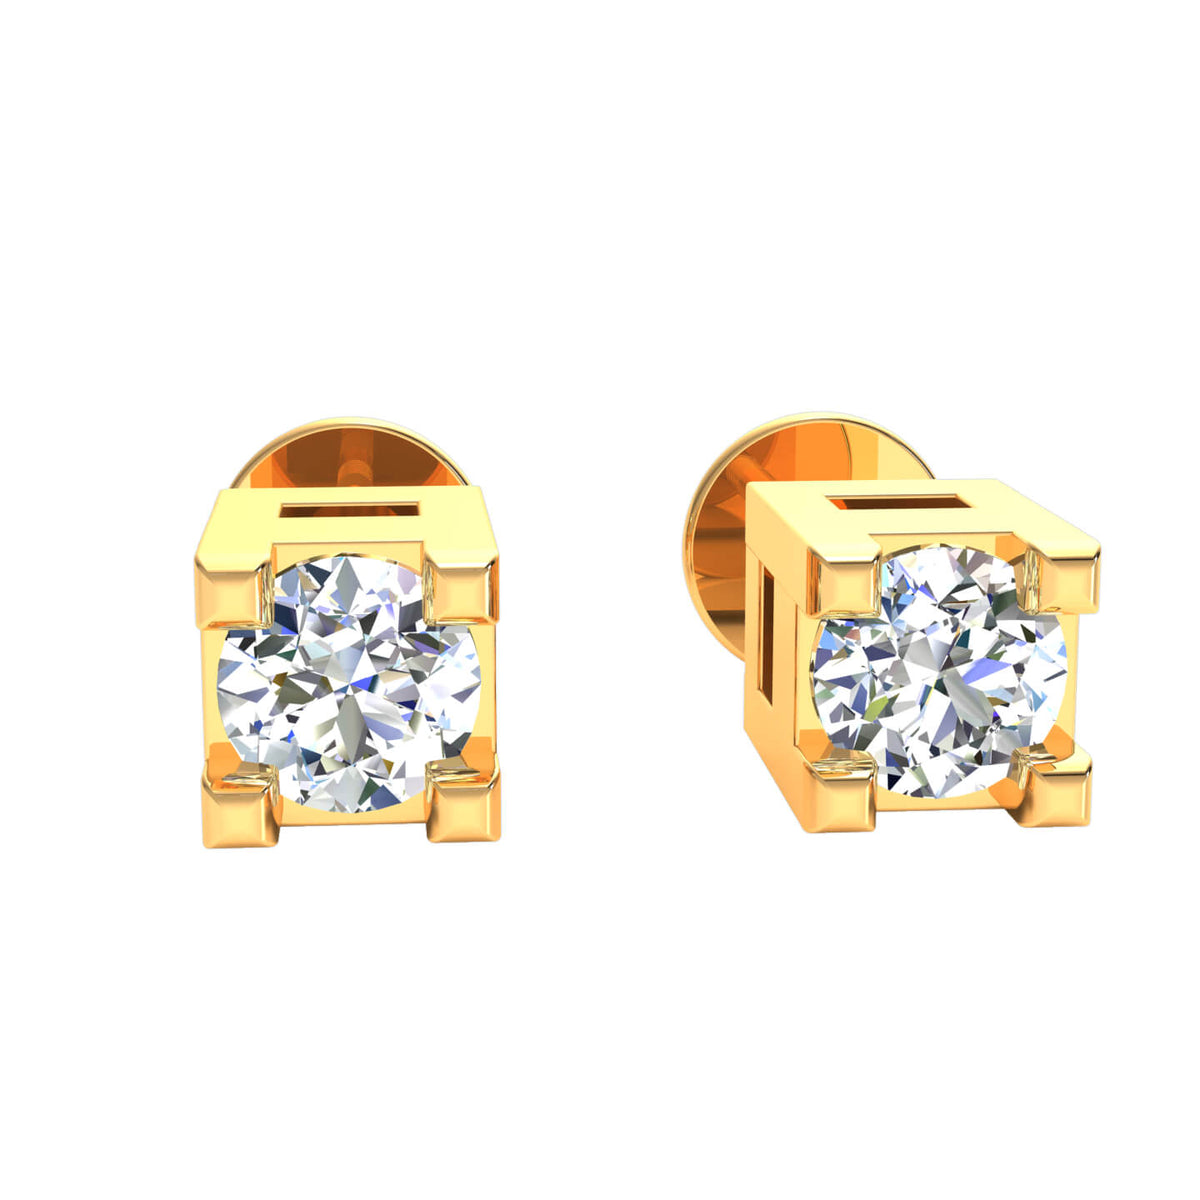 0.05 Ct Round FG VS Diamond Solitaire Unisex Stud Earrings 14k Gold